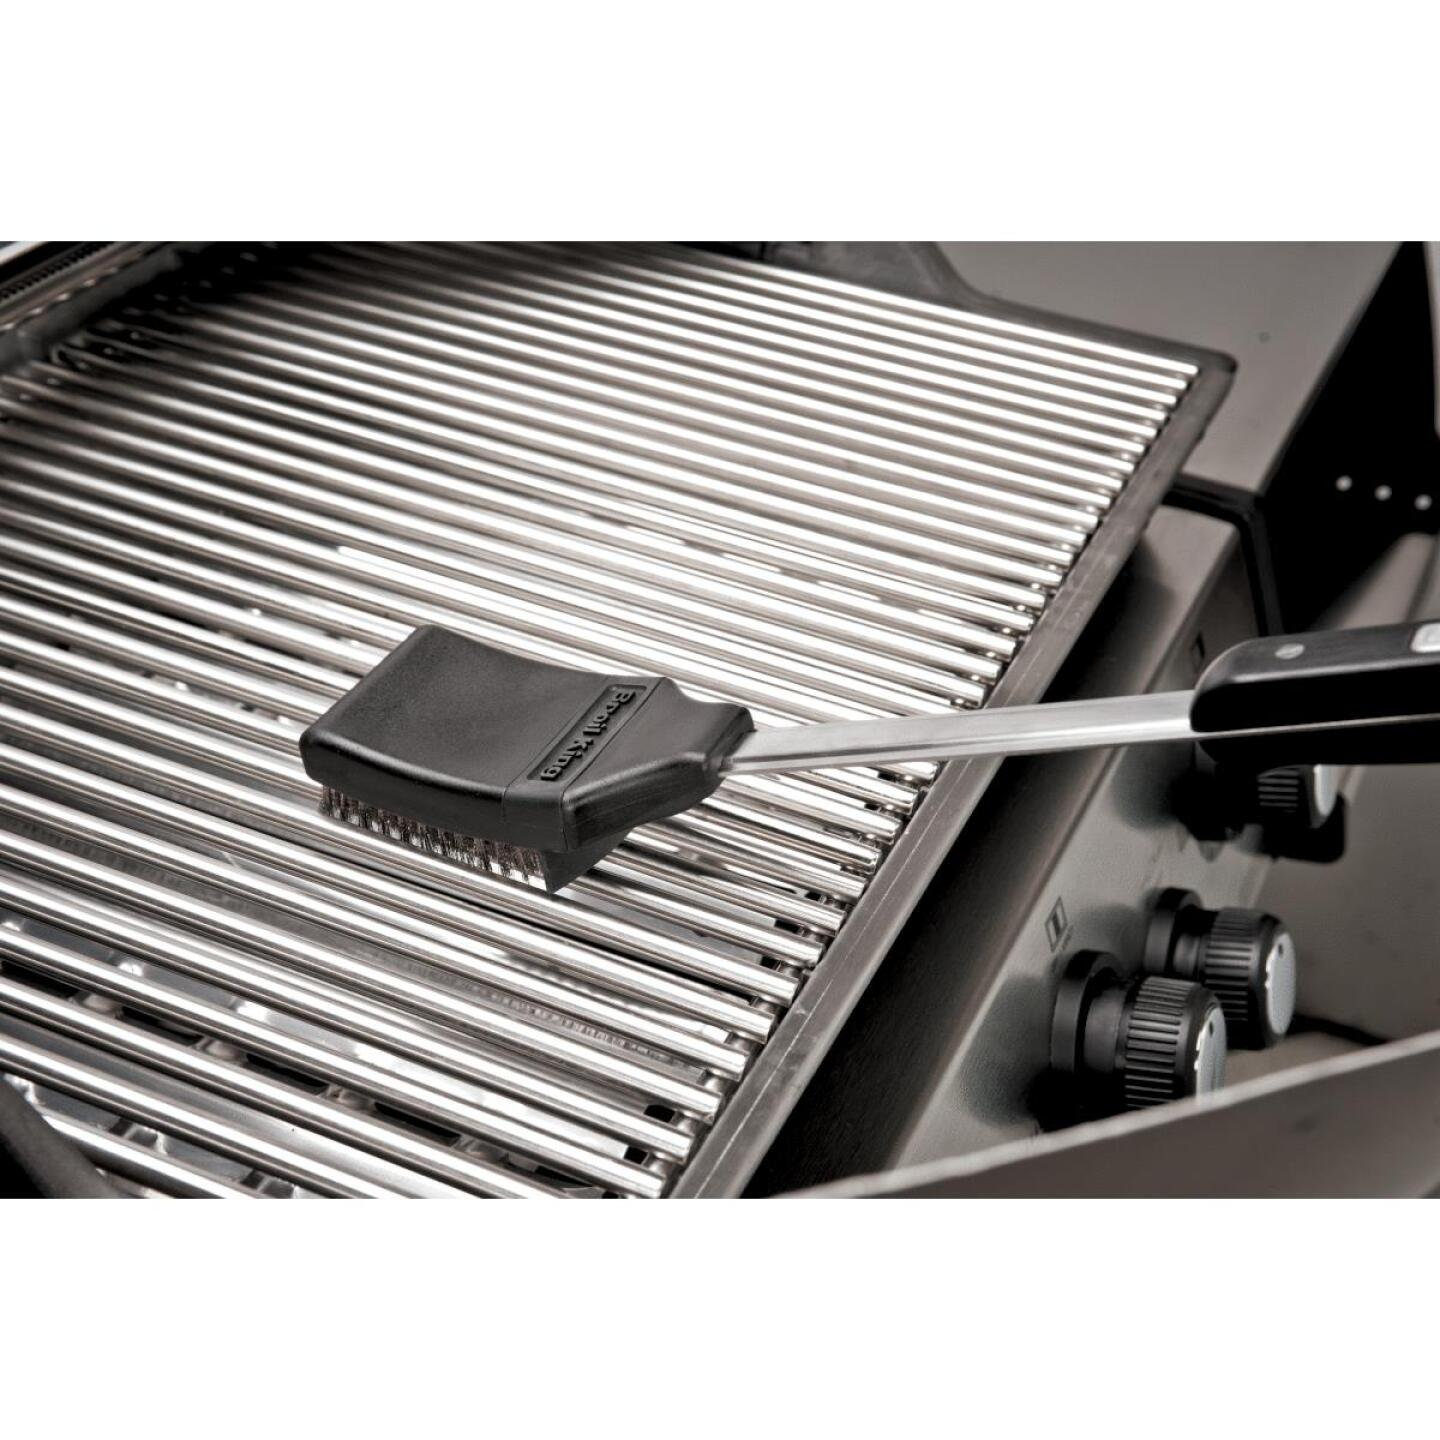 Broil King Baron 420 Pro Special Edition Black 4-Burner Stainless Steel 40,000 BTU LP Gas Grill Image 5